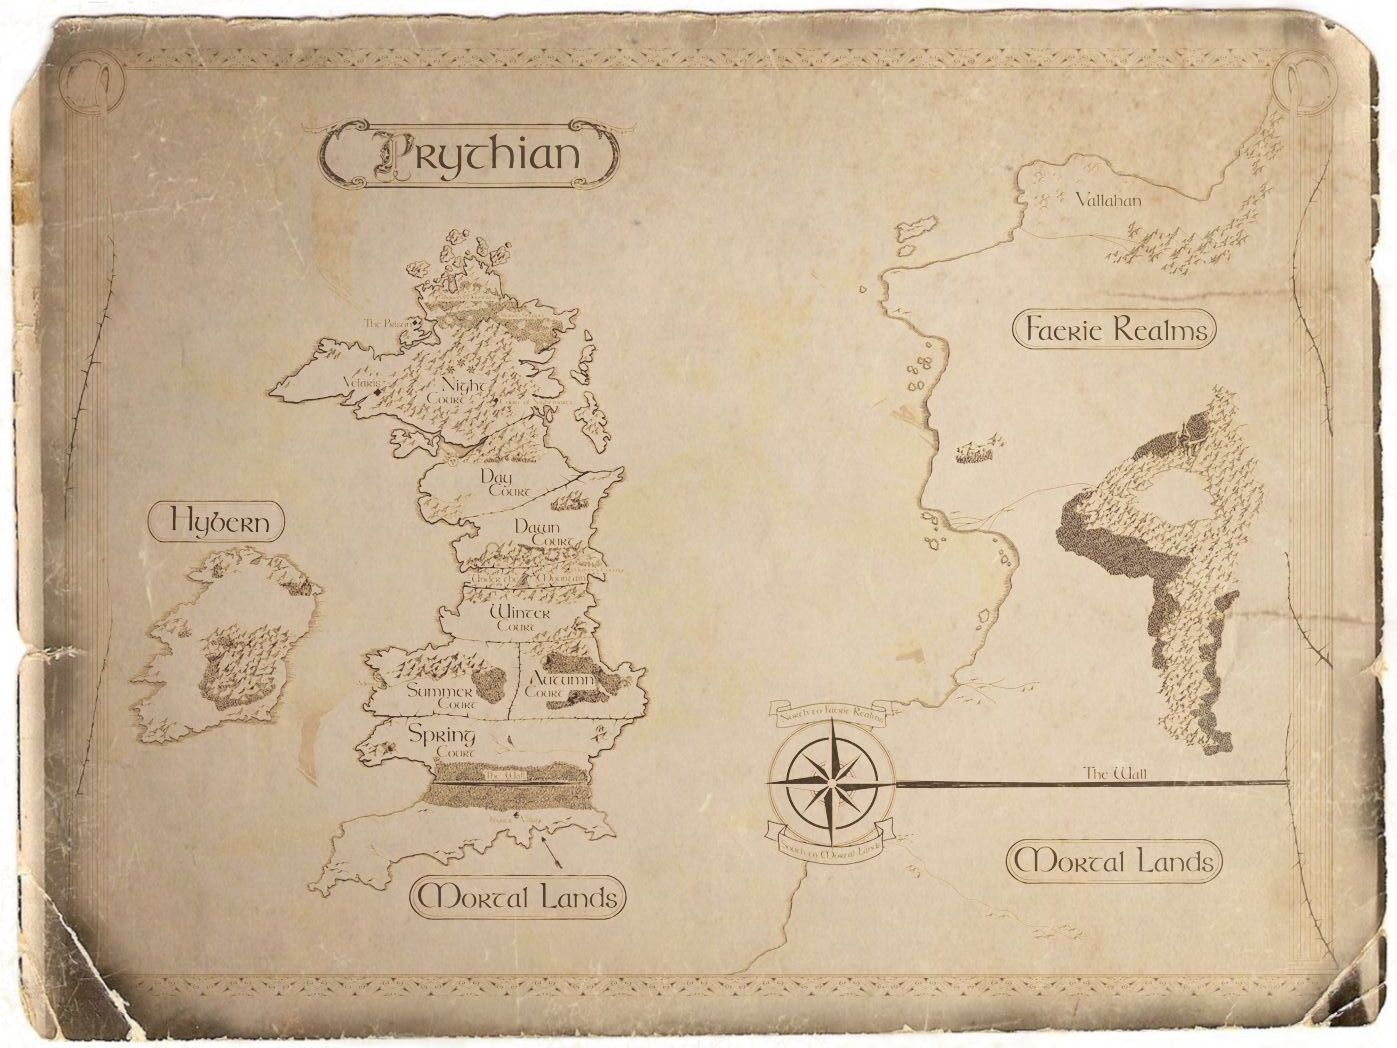 Aged Map Of Prythian From Sarah J Maas A Court Of Thorns And